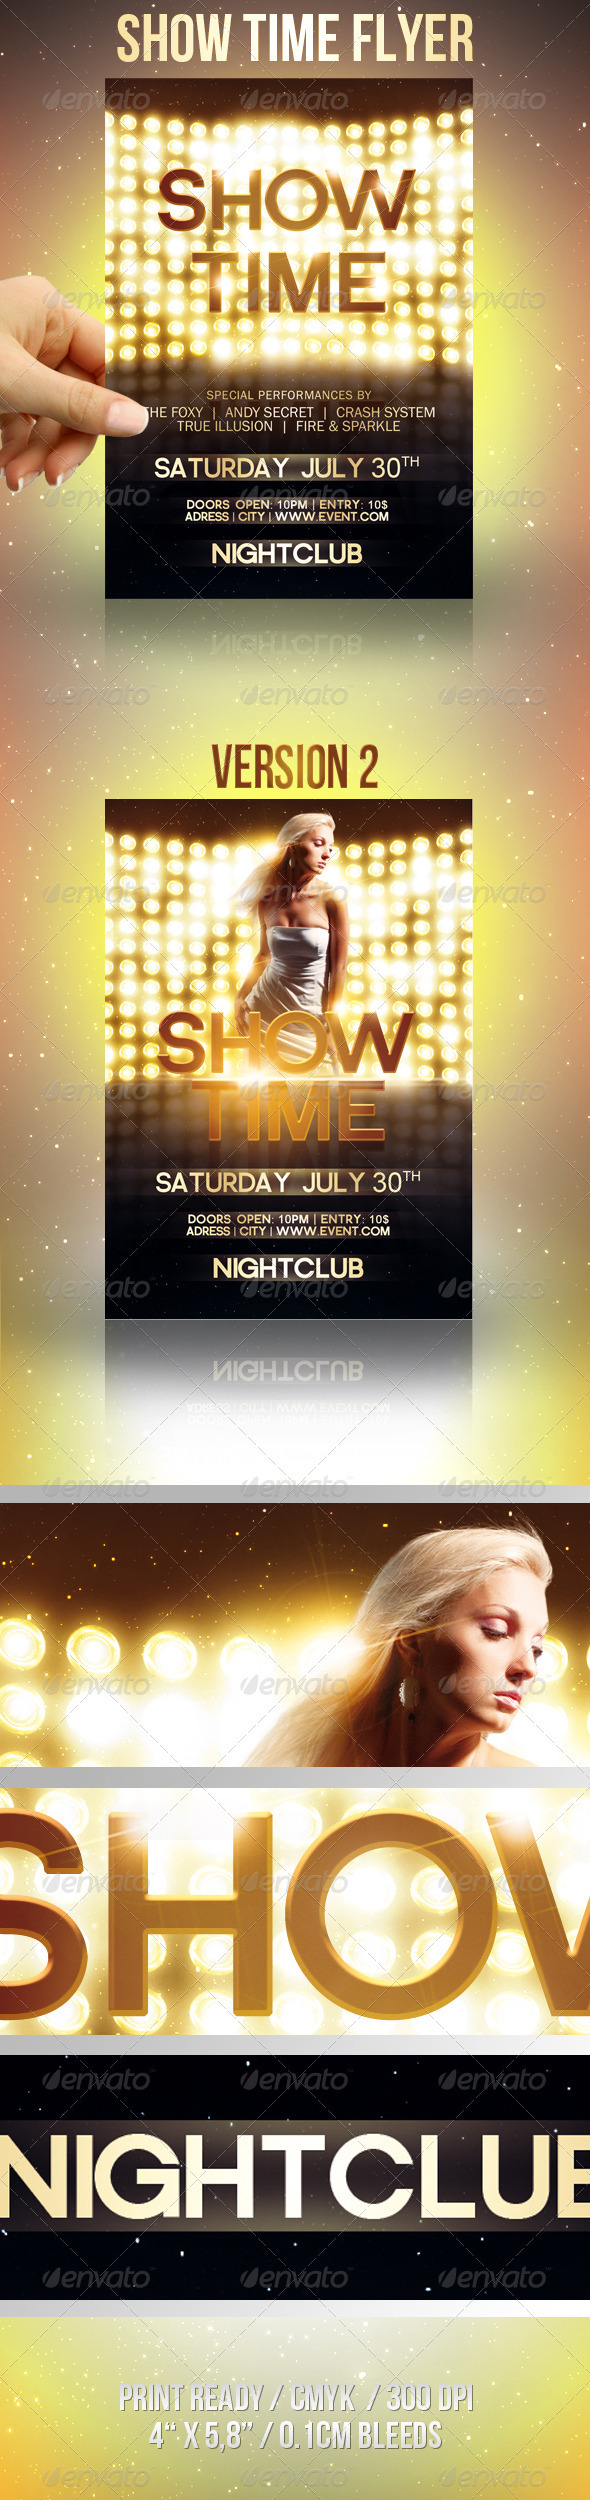 Show Time Flyer - Clubs & Parties Events